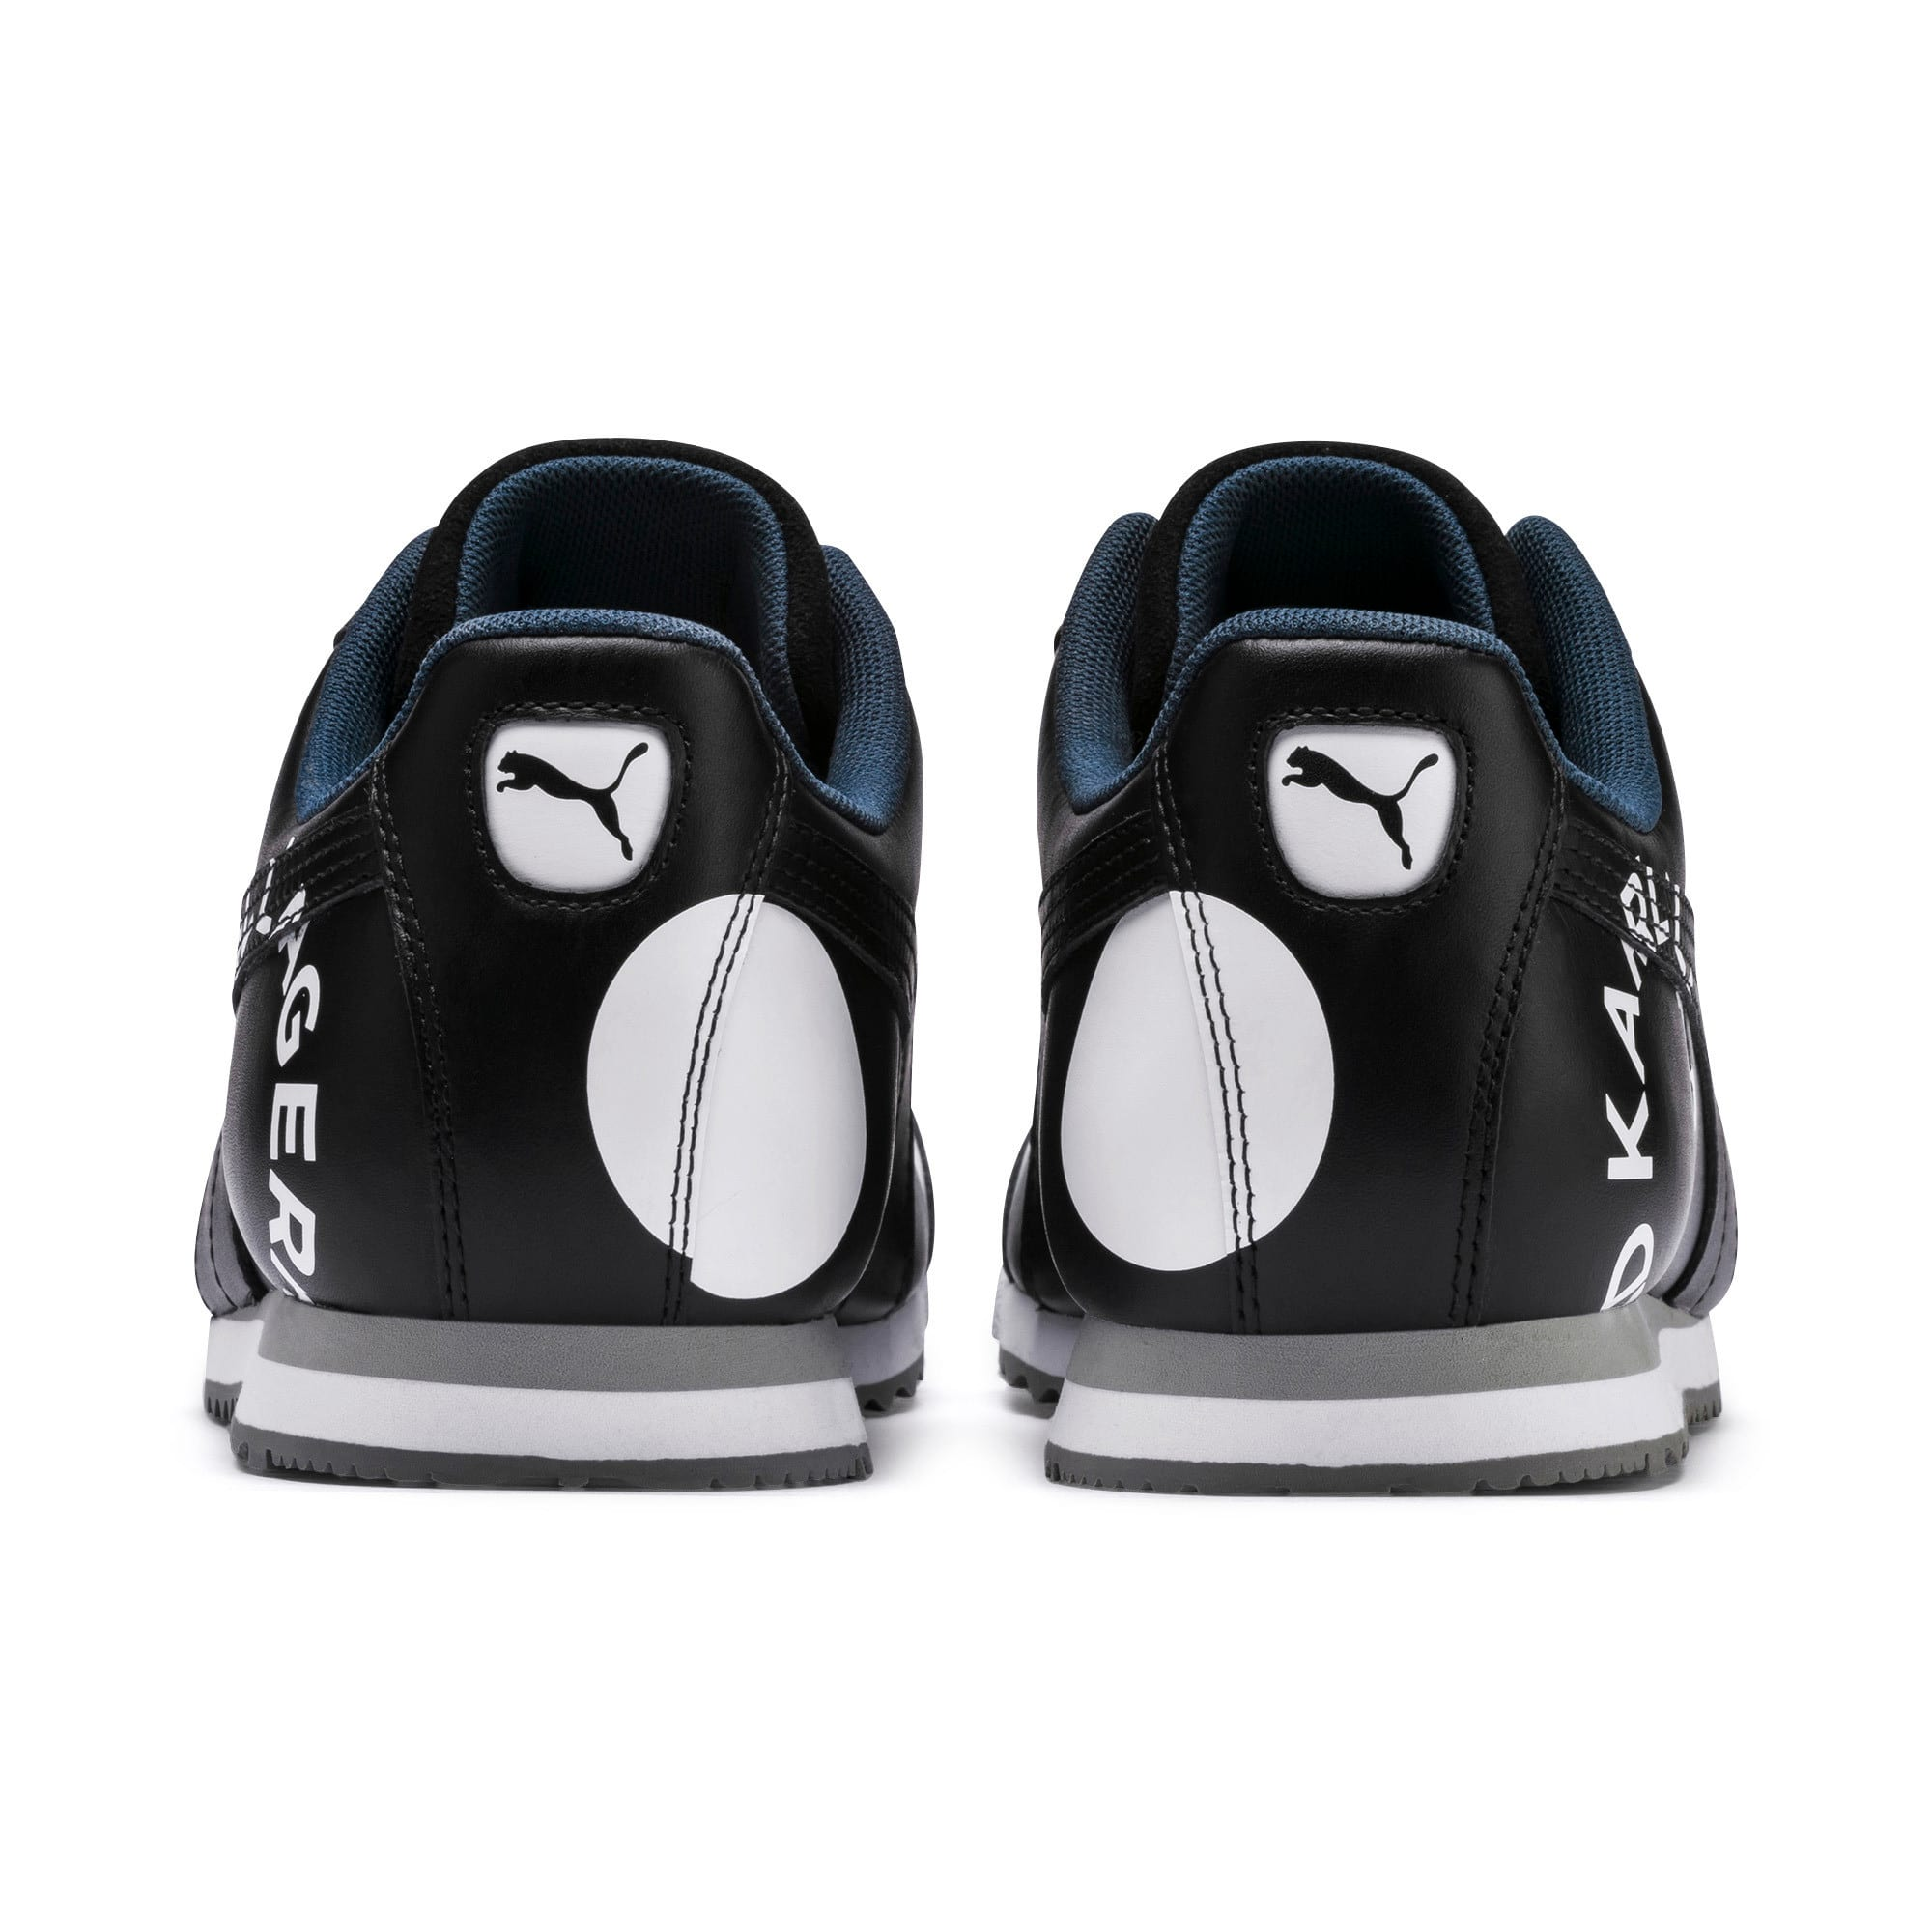 Thumbnail 3 of Basket Roma Polkadot PUMA x KARL LAGERFELD, Puma Black, medium